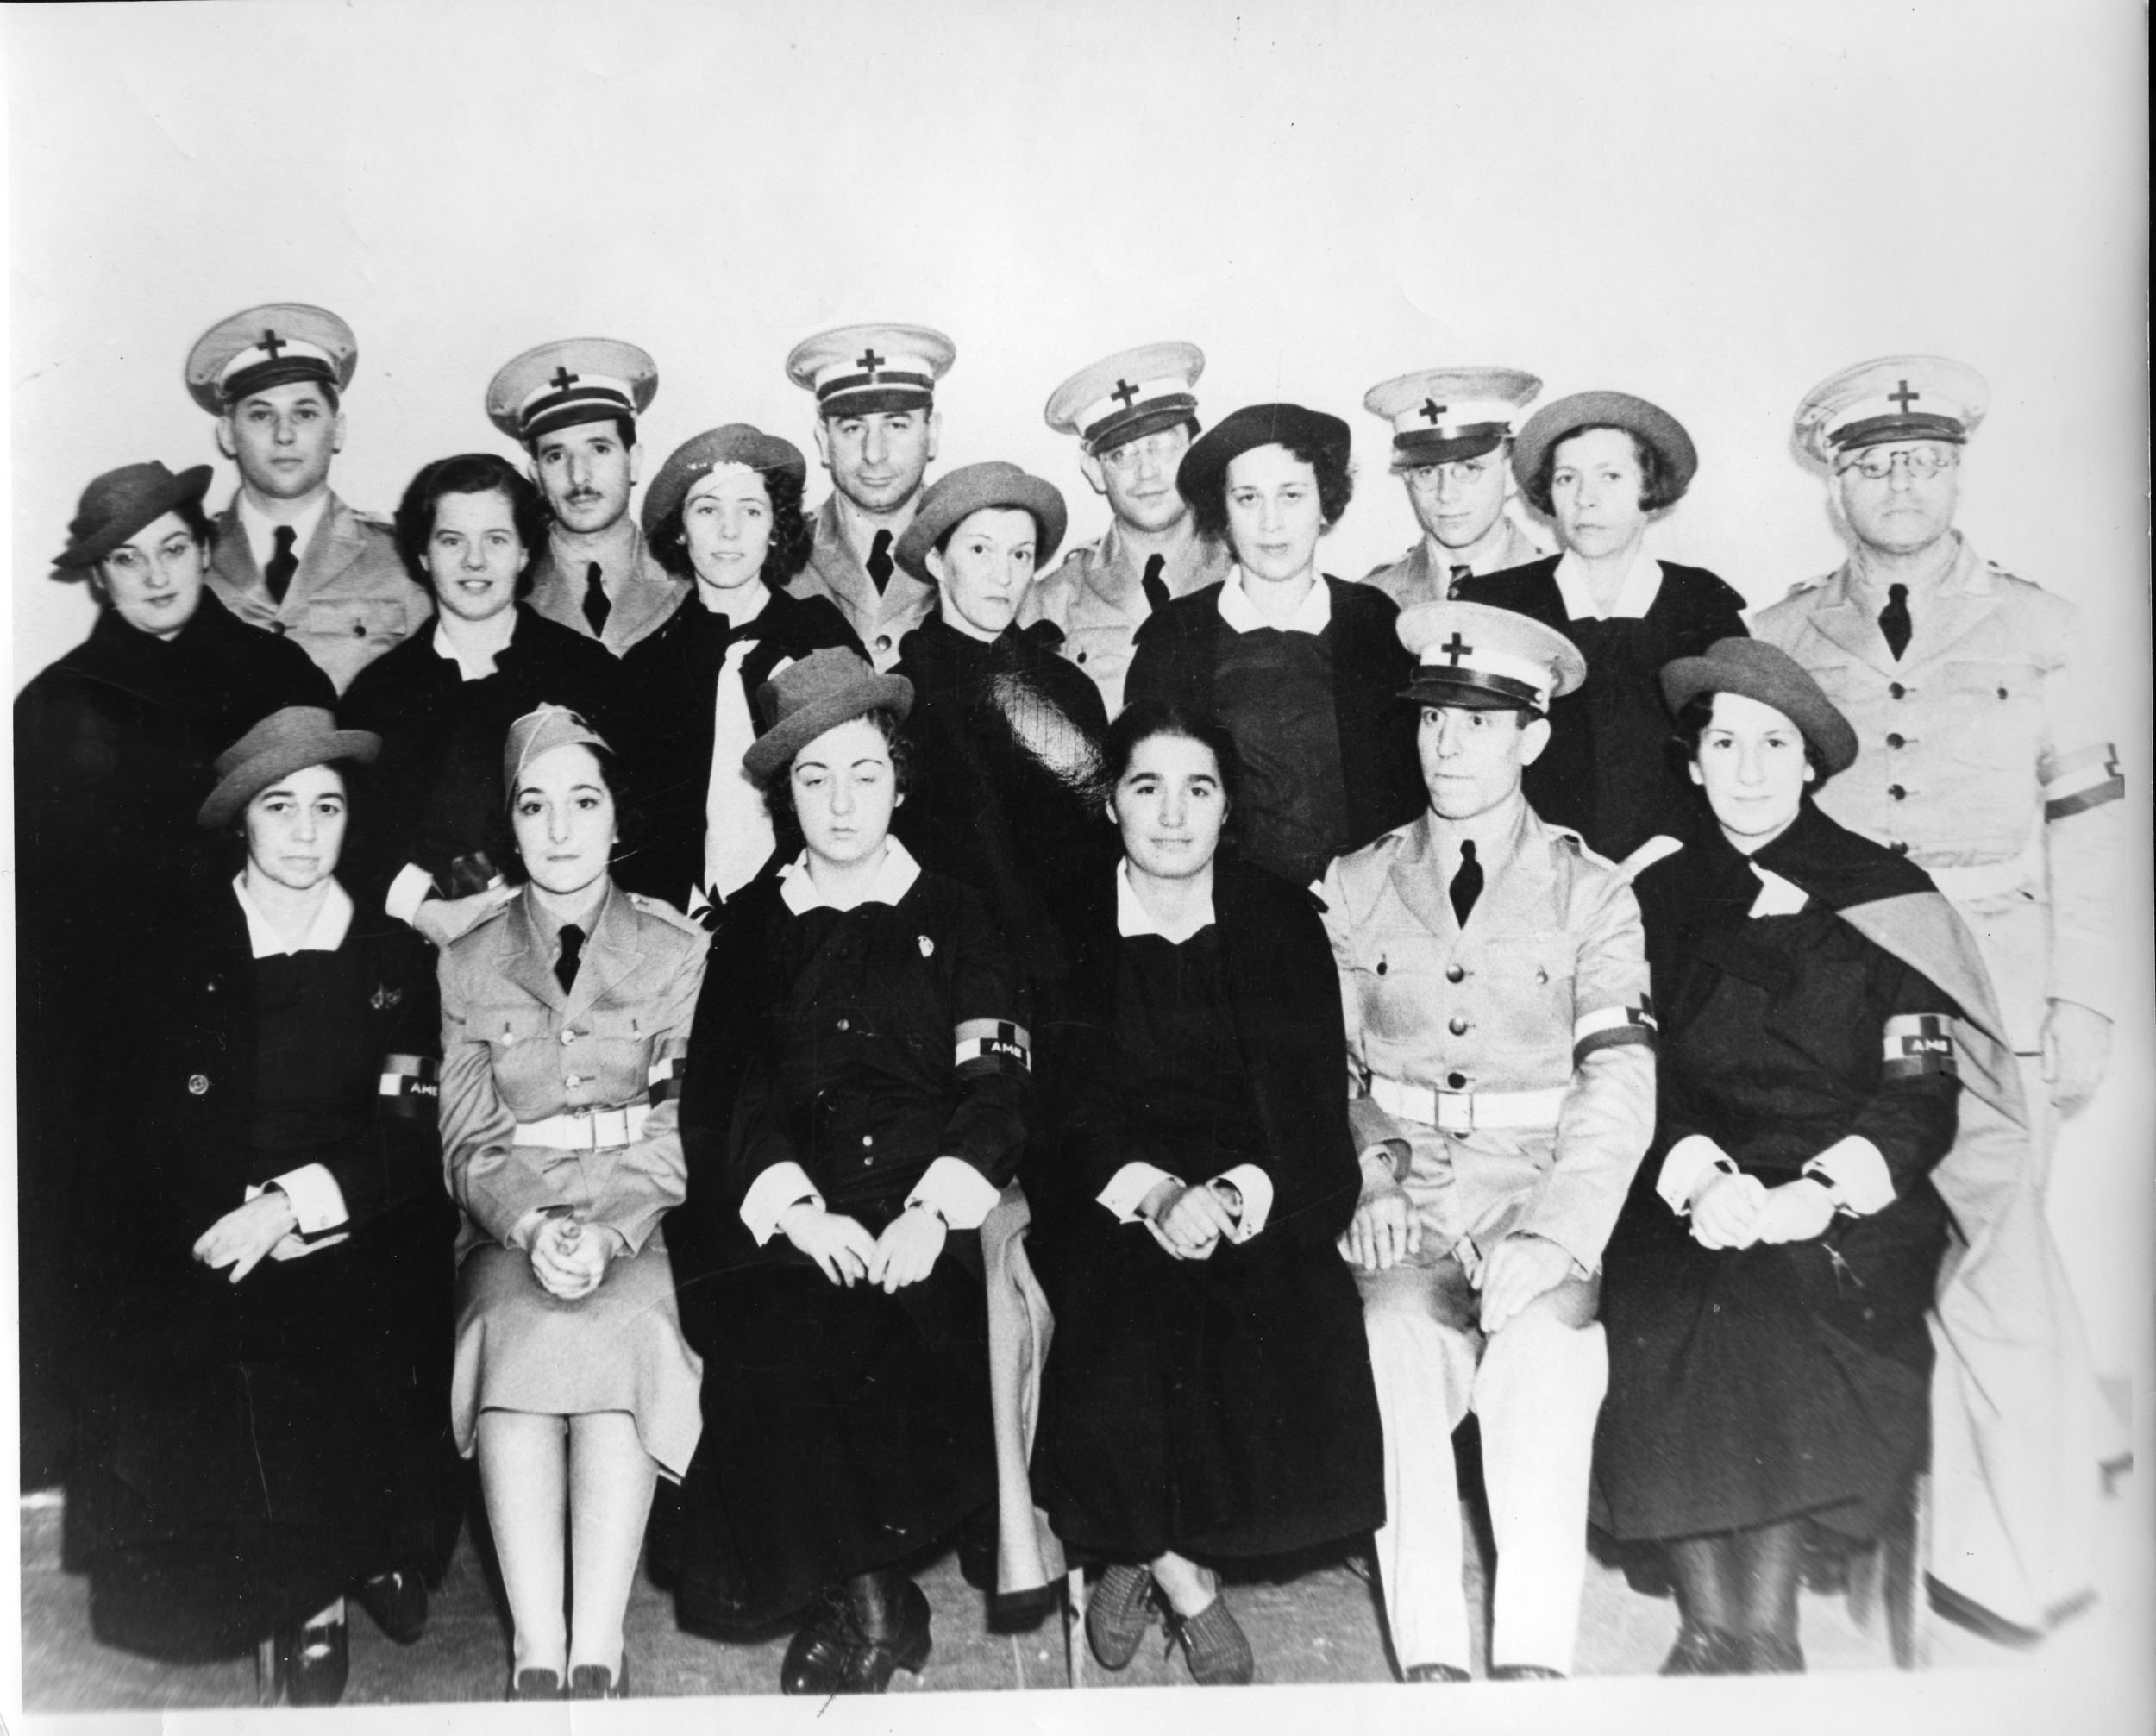 Volunteers of the American Medical Bureau (AMB), from the Frances S. Patai Collection at New York University